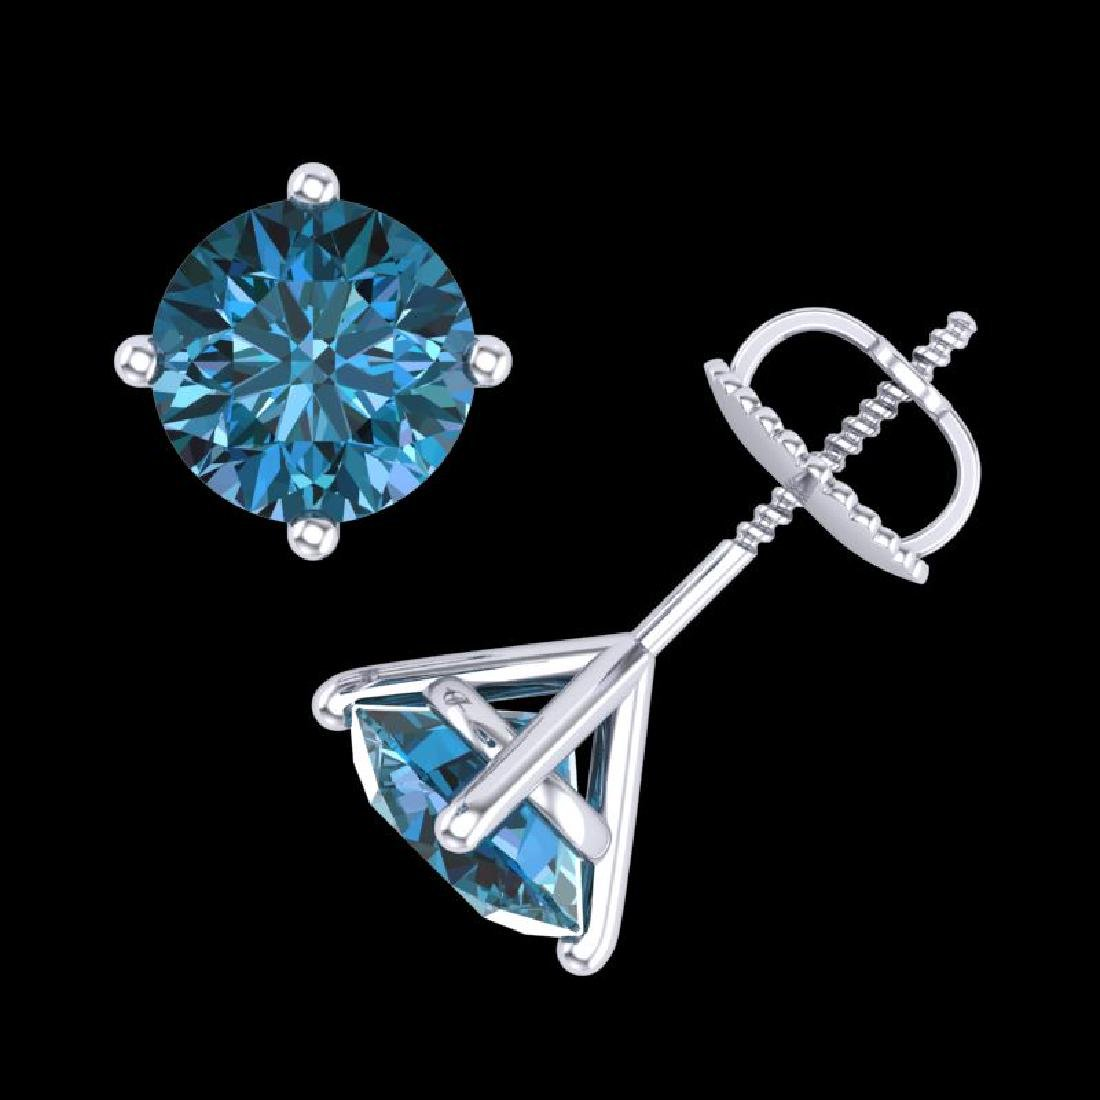 2.5 CTW Fancy Intense Blue Diamond Art Deco Stud - 3